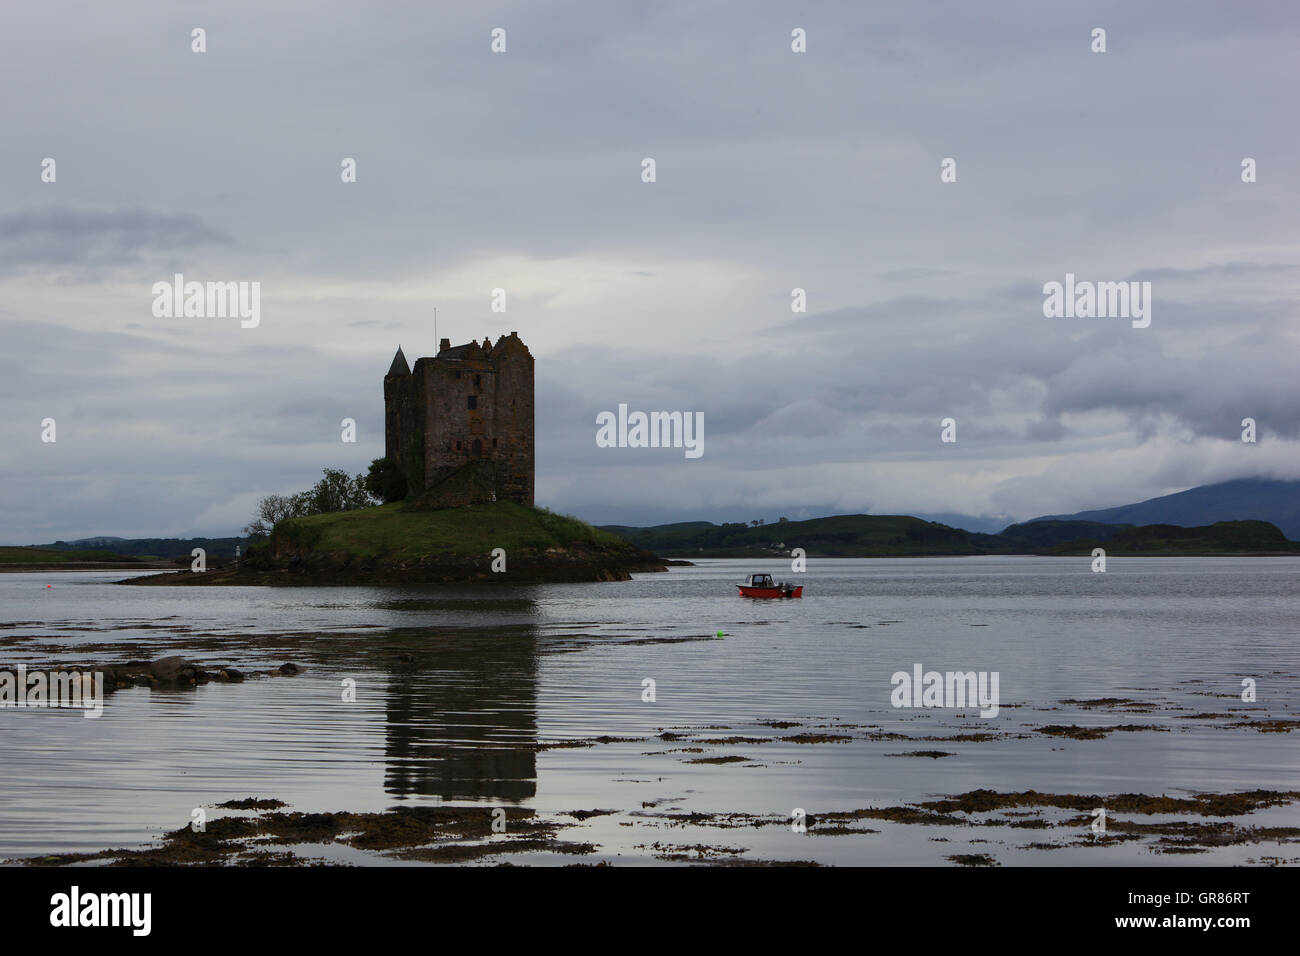 Scotland, Stalker Castle, the depression castle stands on a small, rocky tidal island in the Loch spawn, a bay of - Stock Image